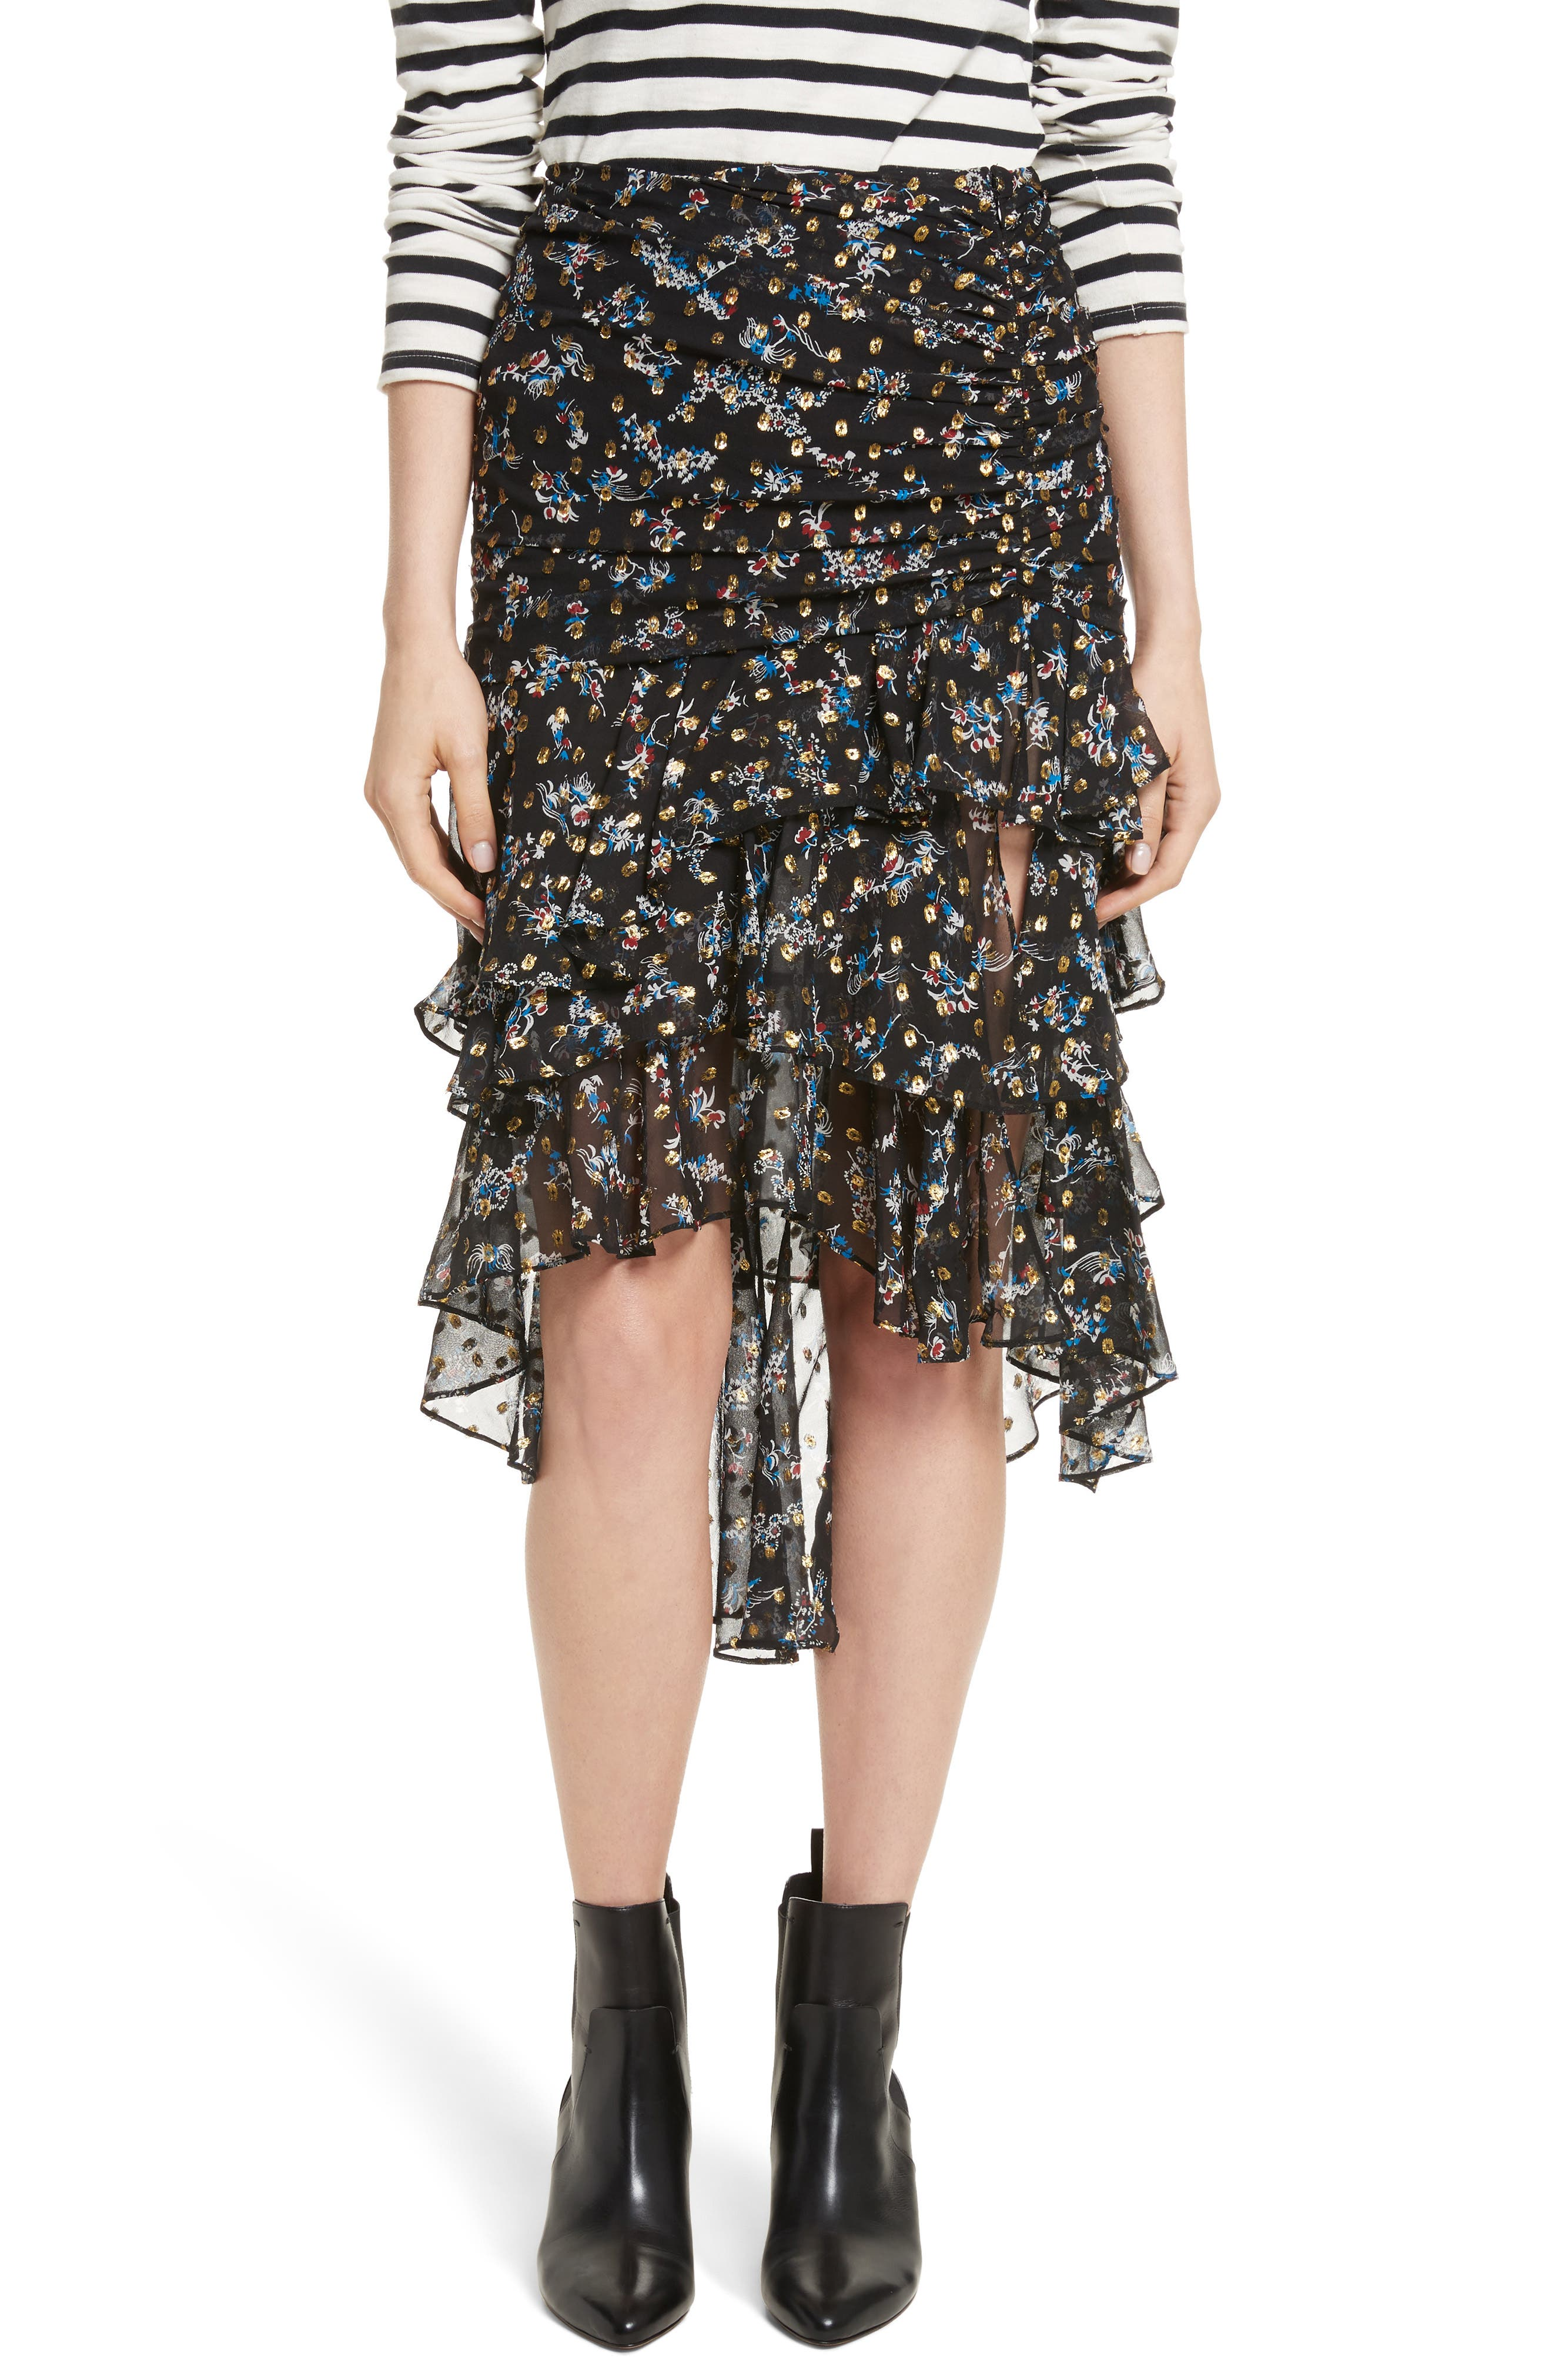 Cella Metallic Floral Print Midi Skirt,                             Main thumbnail 1, color,                             008